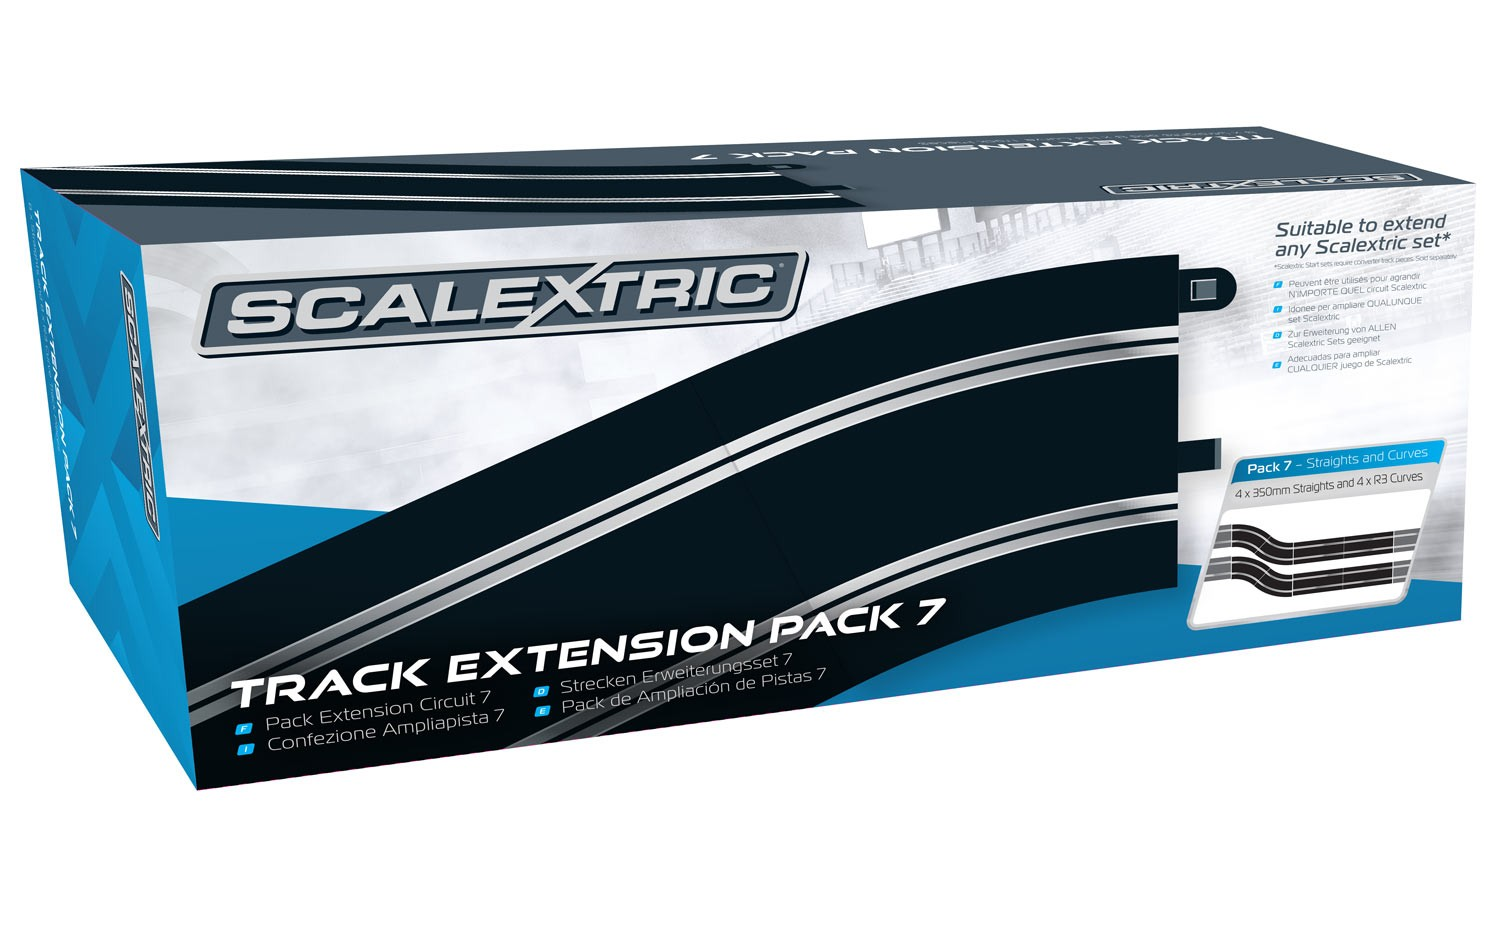 Scalextric Track Extension Pack 6